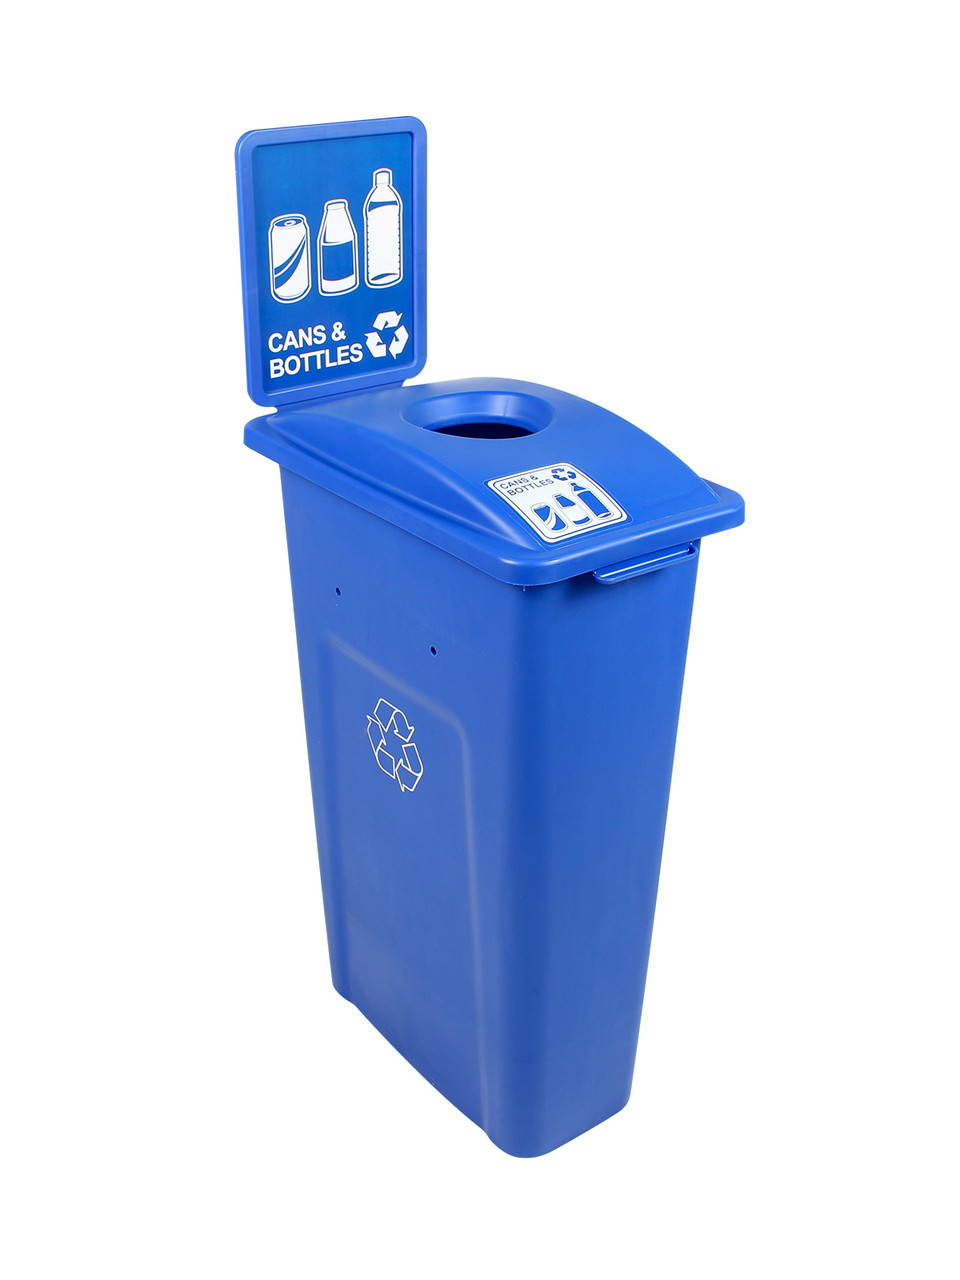 23 Gallon Blue Skinny Simple Sort Recycle Bin with Sign (Cans & Bottles)